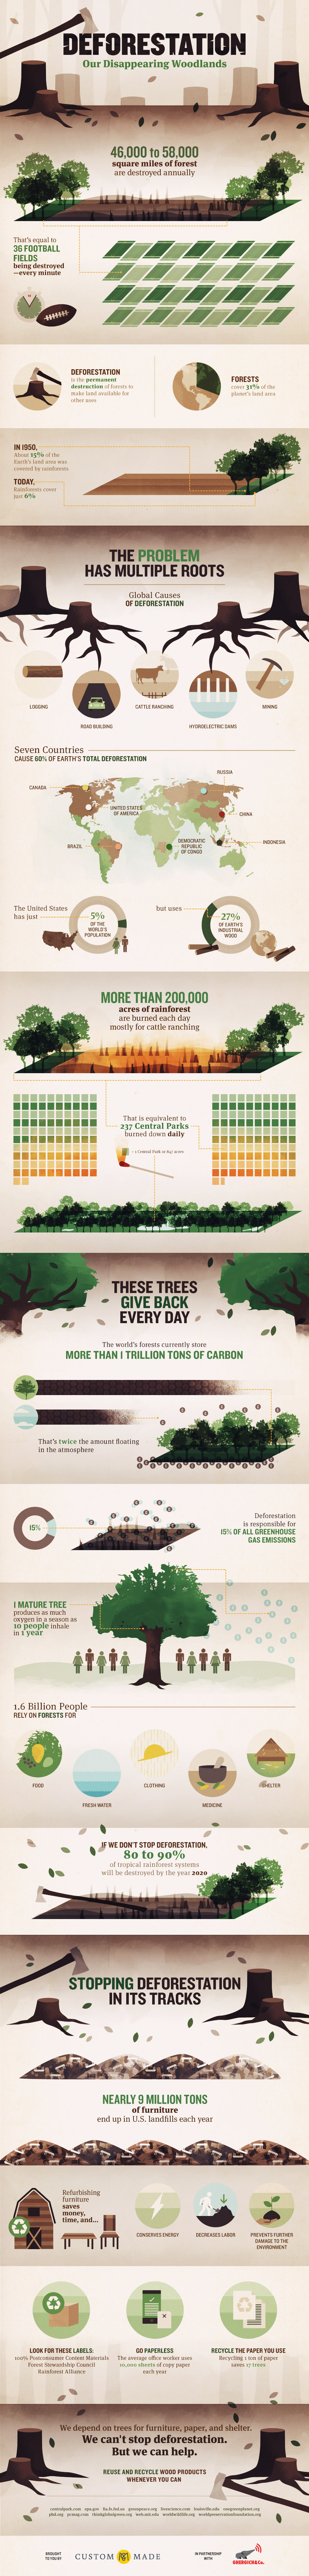 200,000+ Acres of Rainforest are Burned EACH Day.